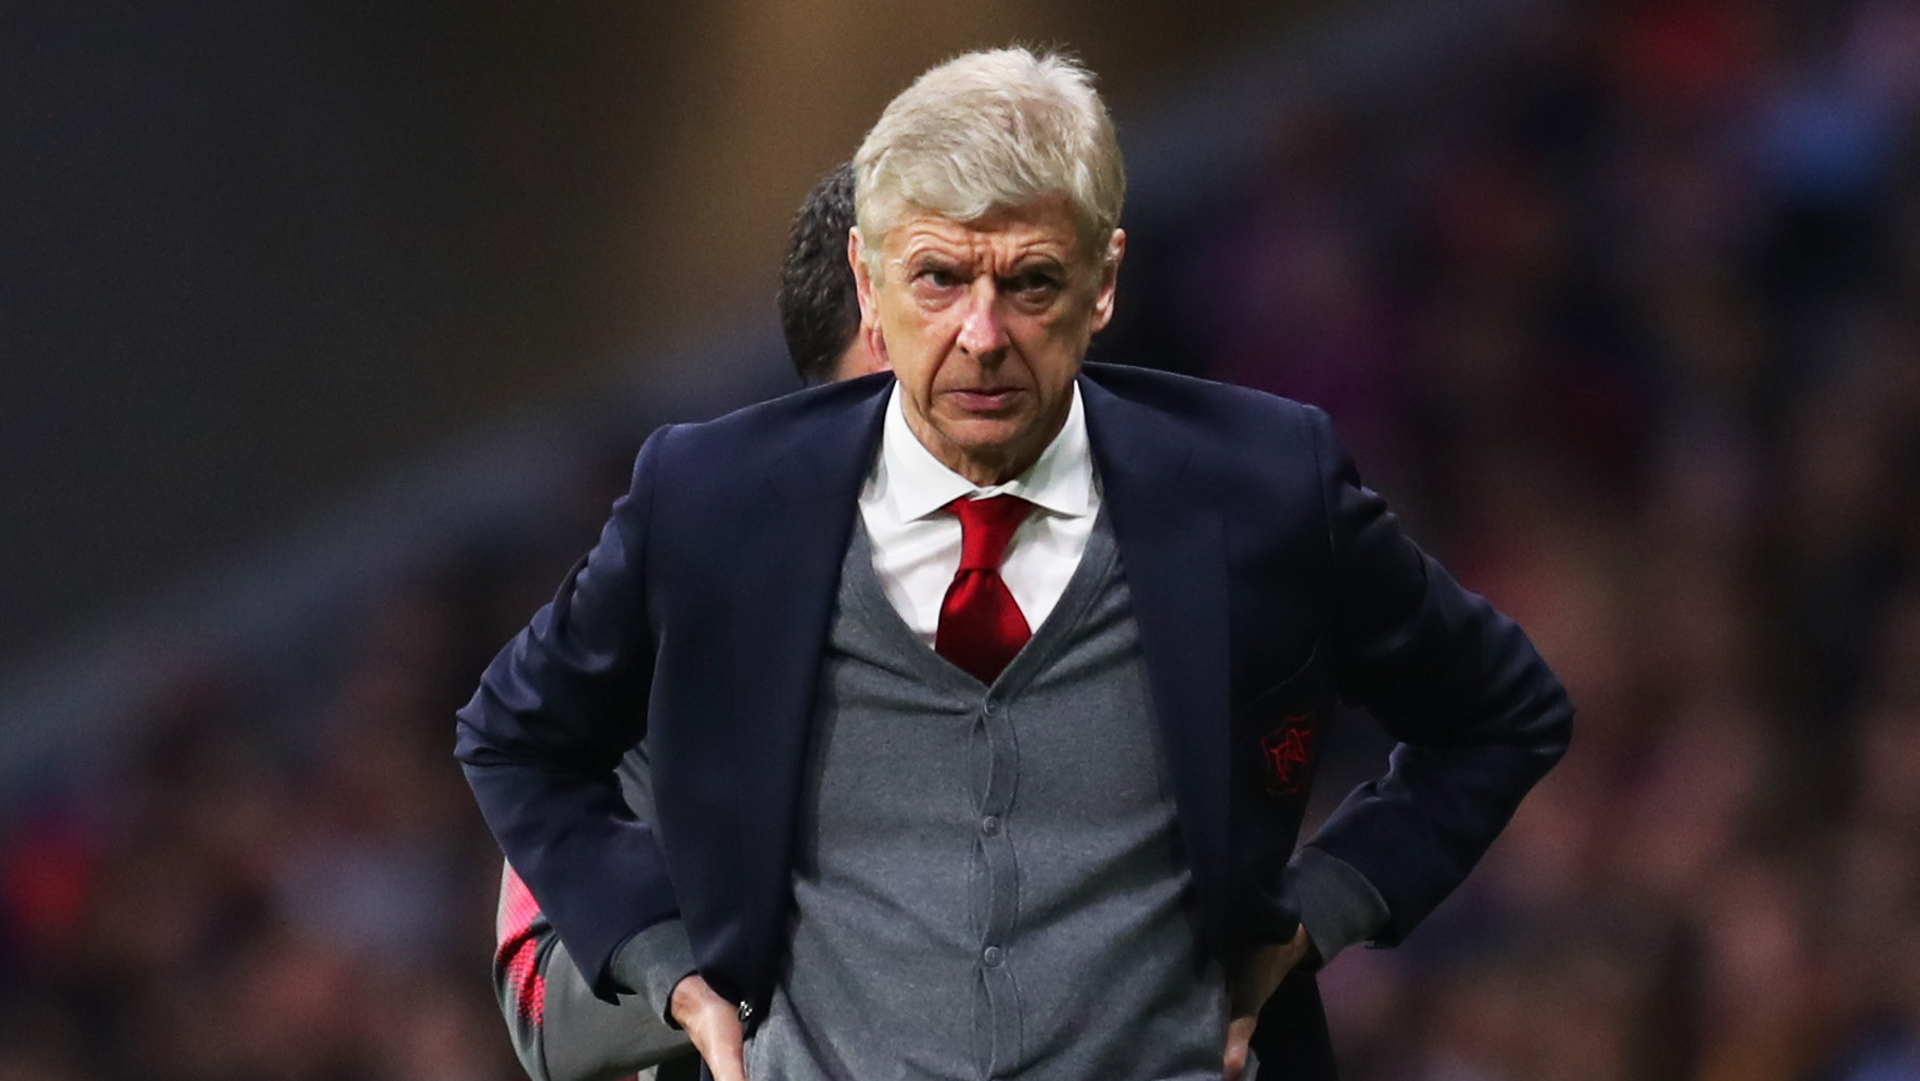 No titles in 34 years - Why Wenger's career has been a massive European failure